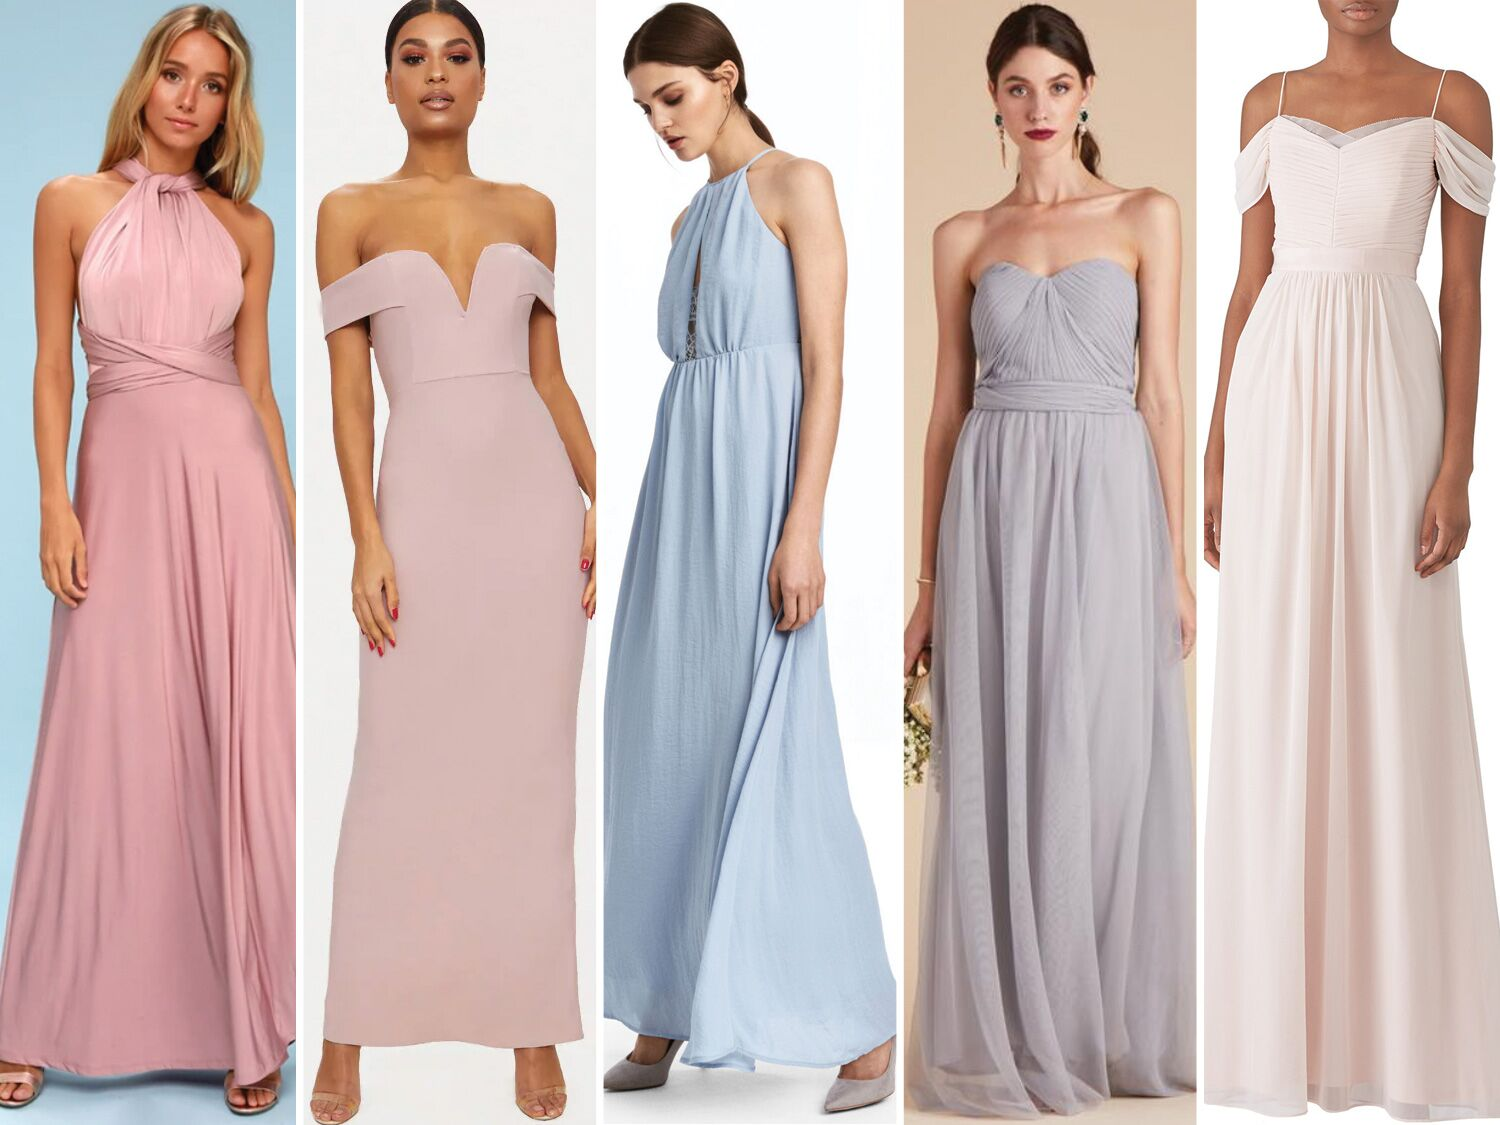 d866e346d491 55 Affordable Bridesmaid Dresses That Don t Look Cheap